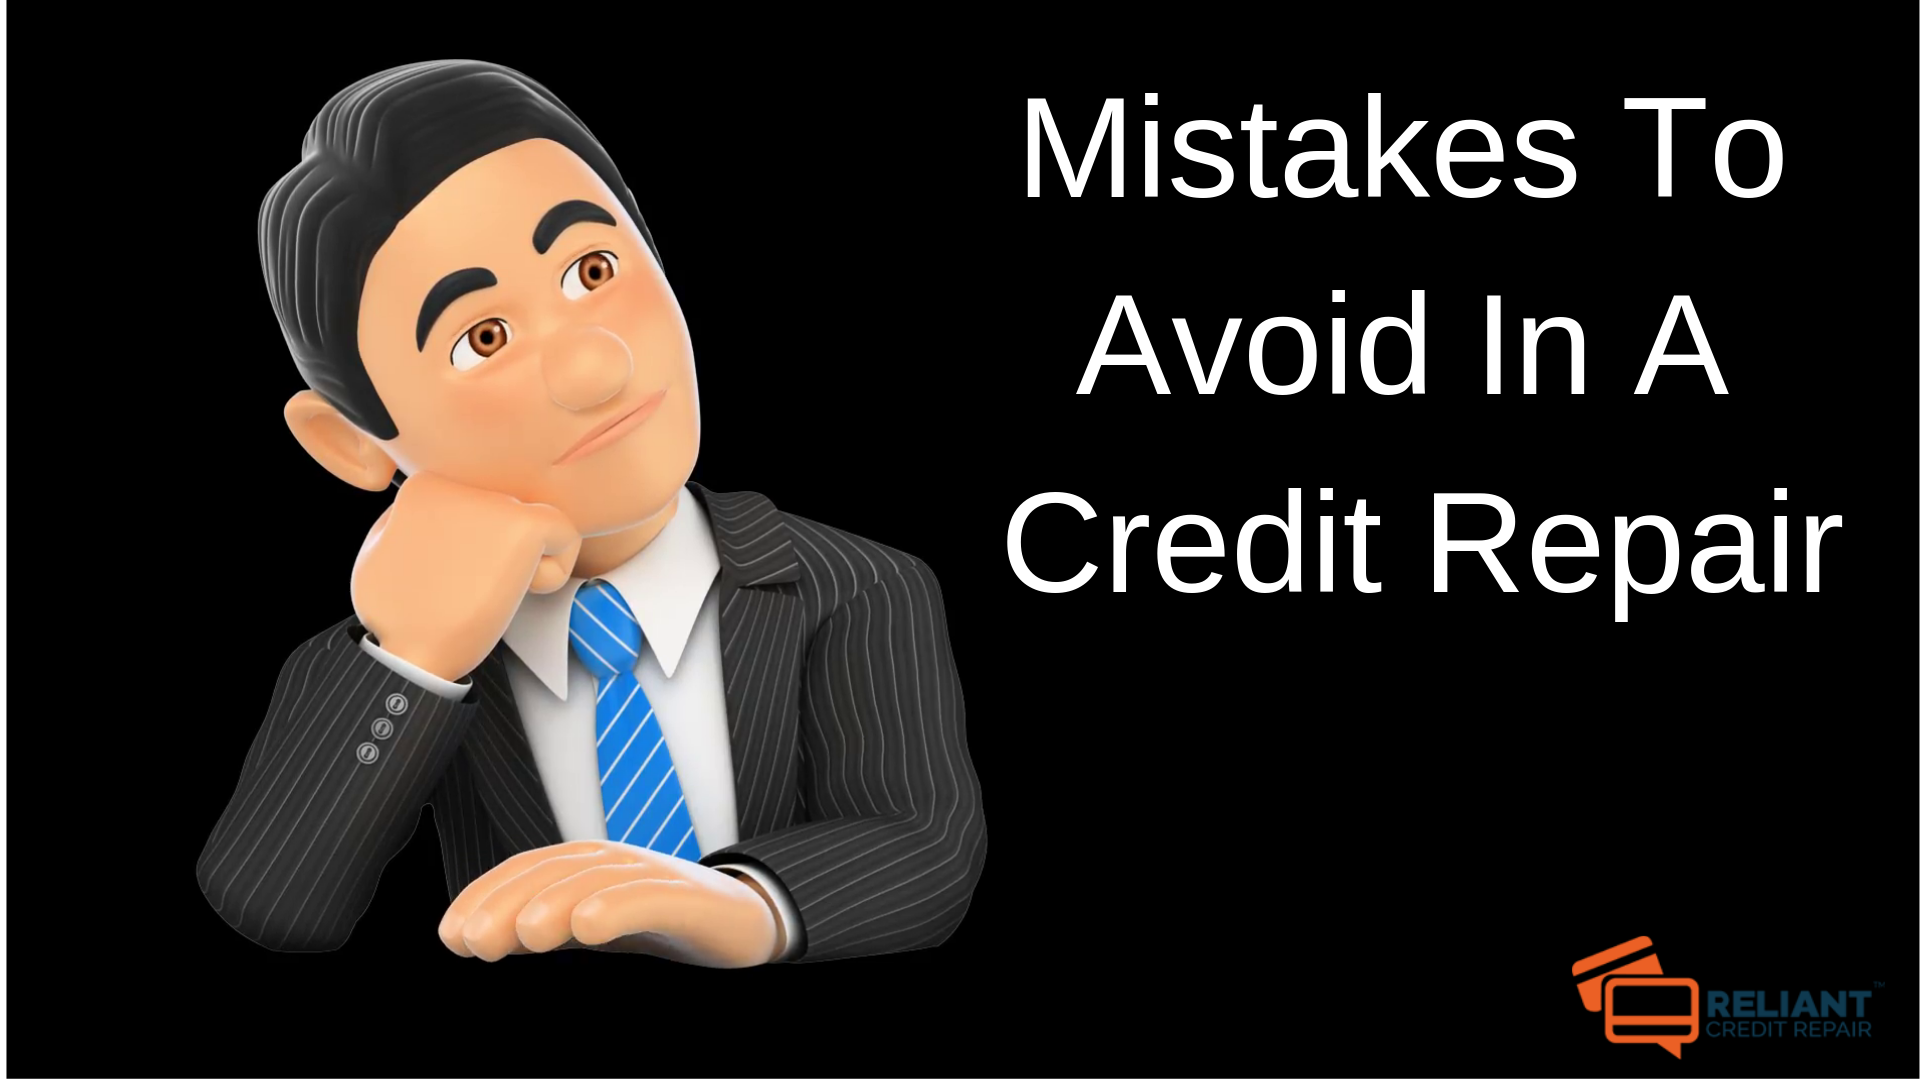 Mistakes To Avoid In A Credit Repair